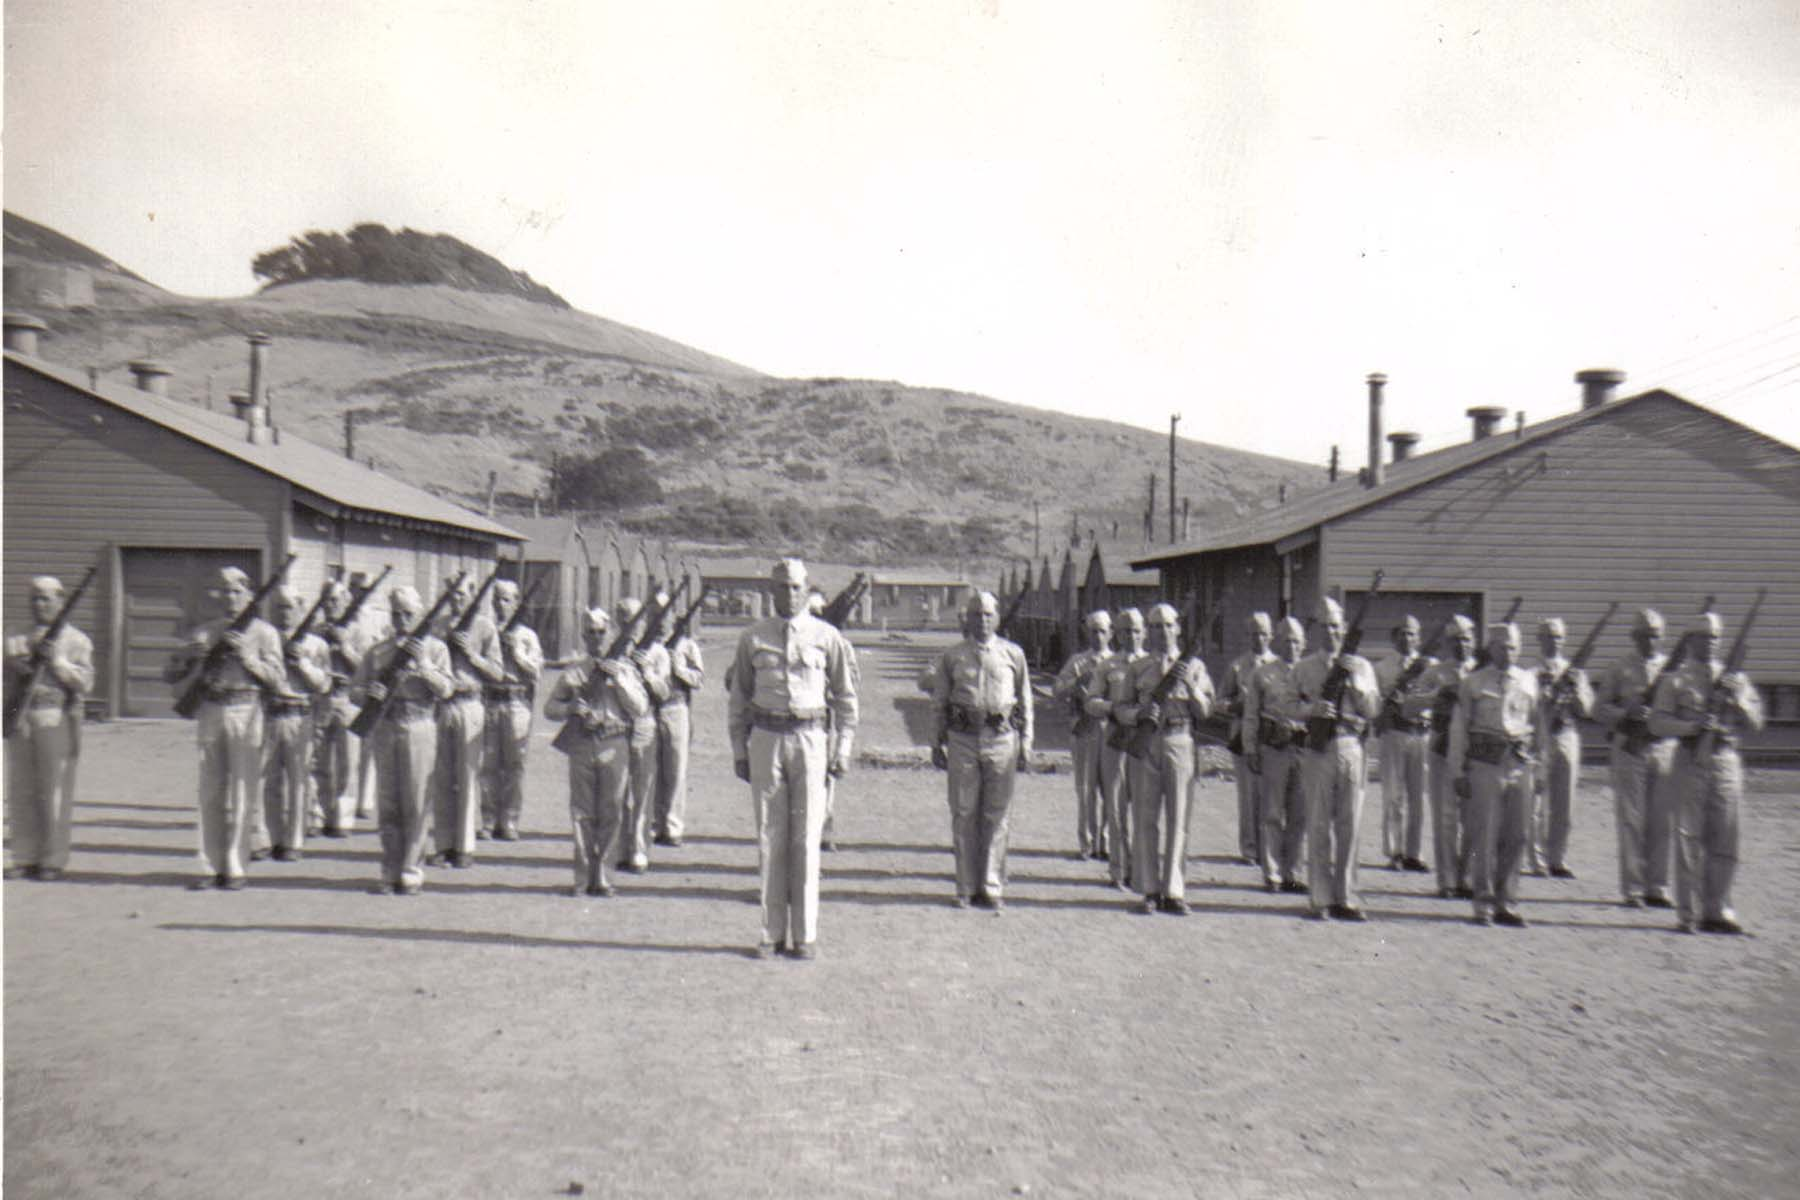 C11 Camp San Luis Obispo - 1st Platoon_ F Company at _port arms_